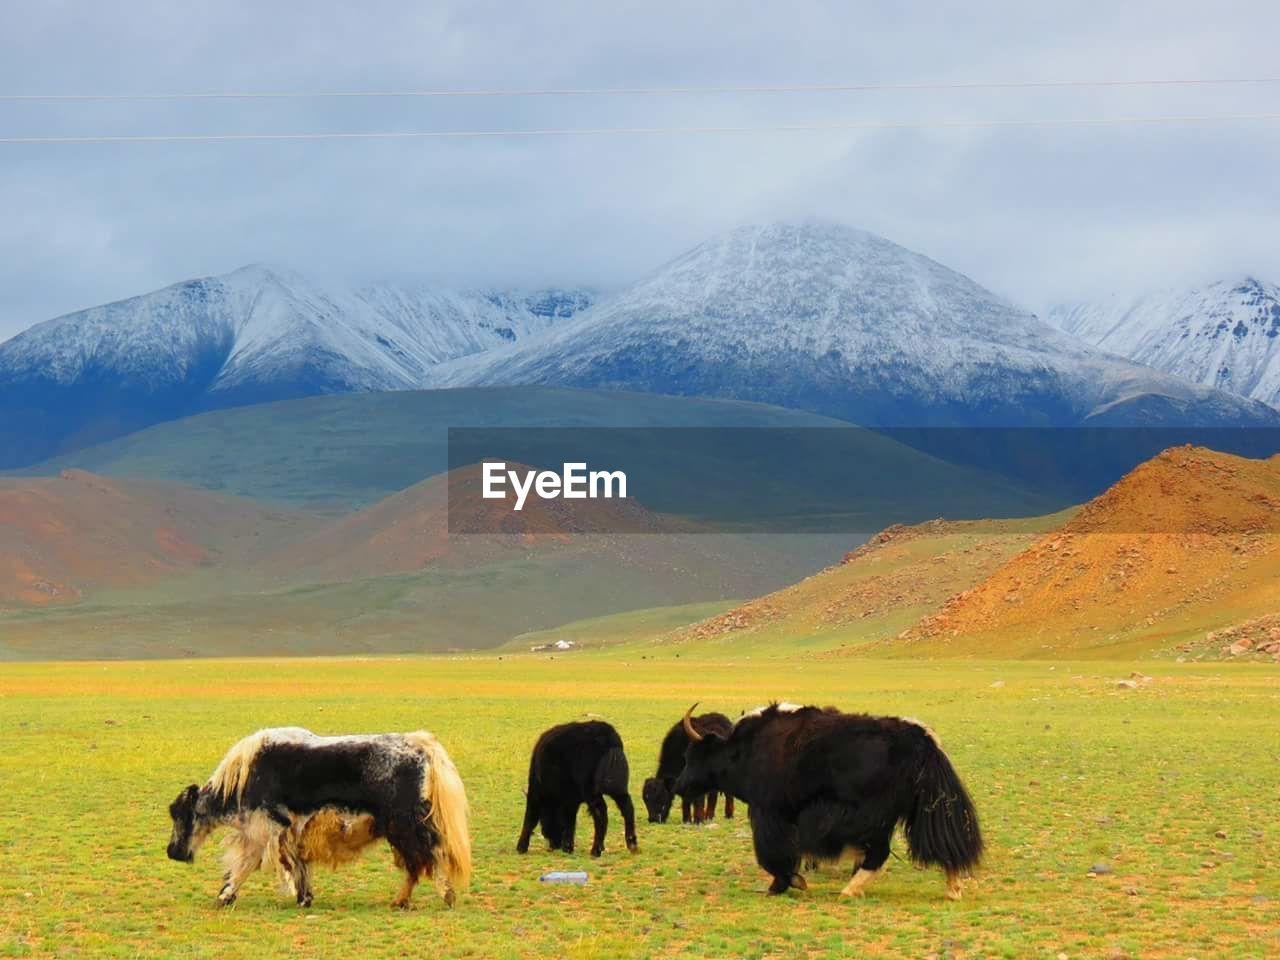 Yaks grazing on field against mountains